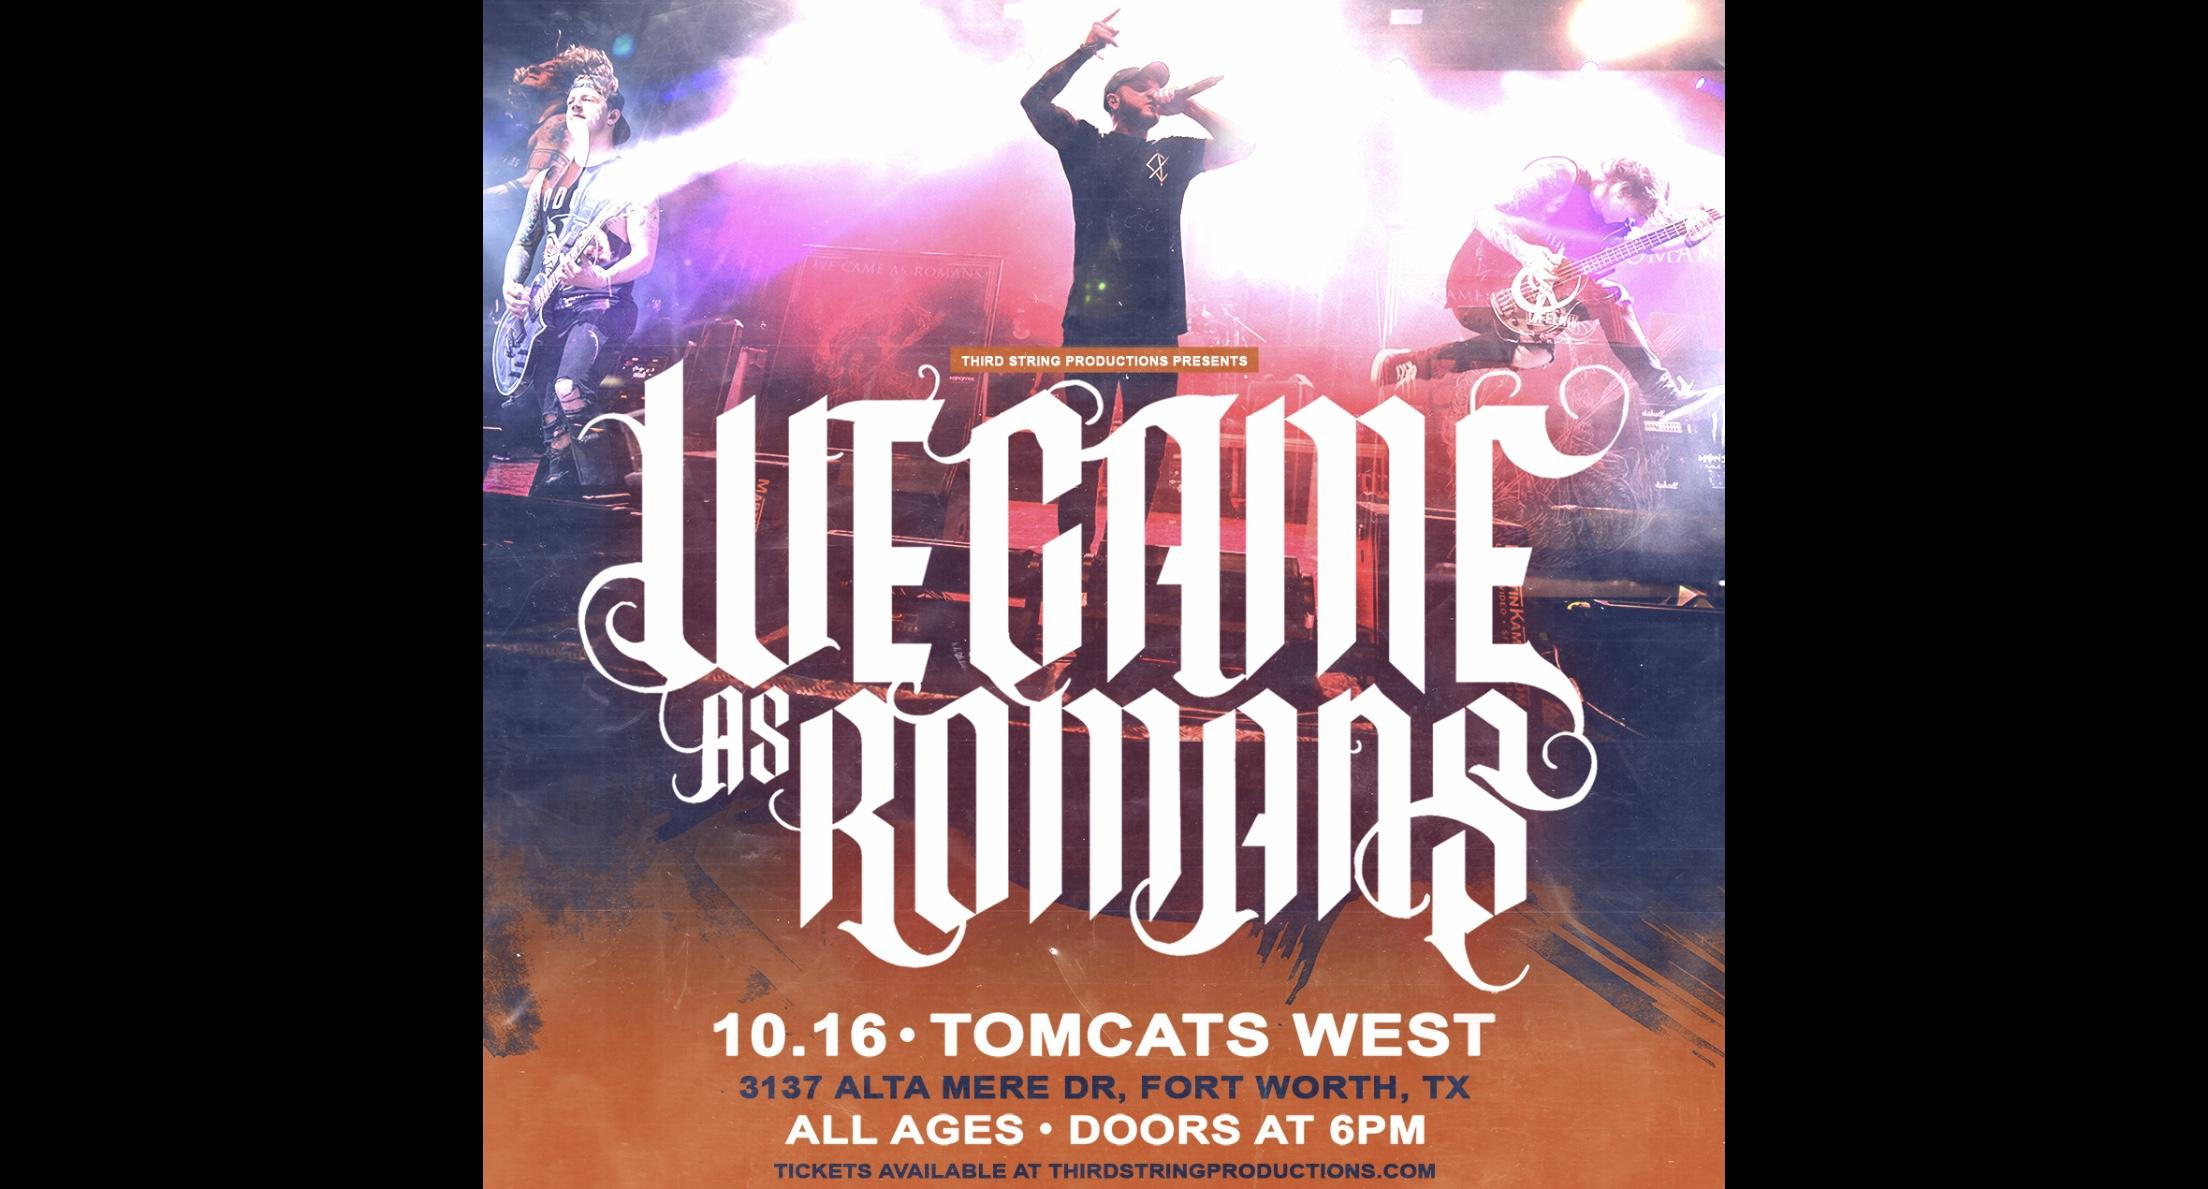 We Came As Romans at Tomcats West